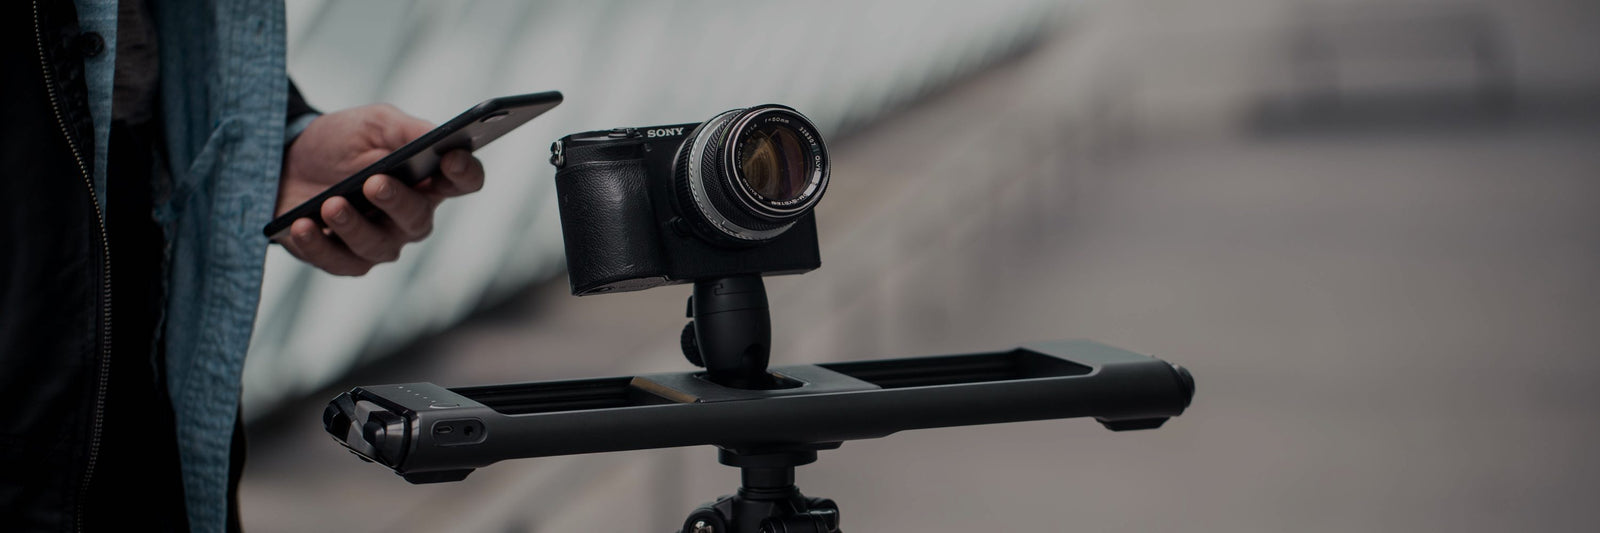 Motorized Camera Sliders for Time Lapse and Live Motion